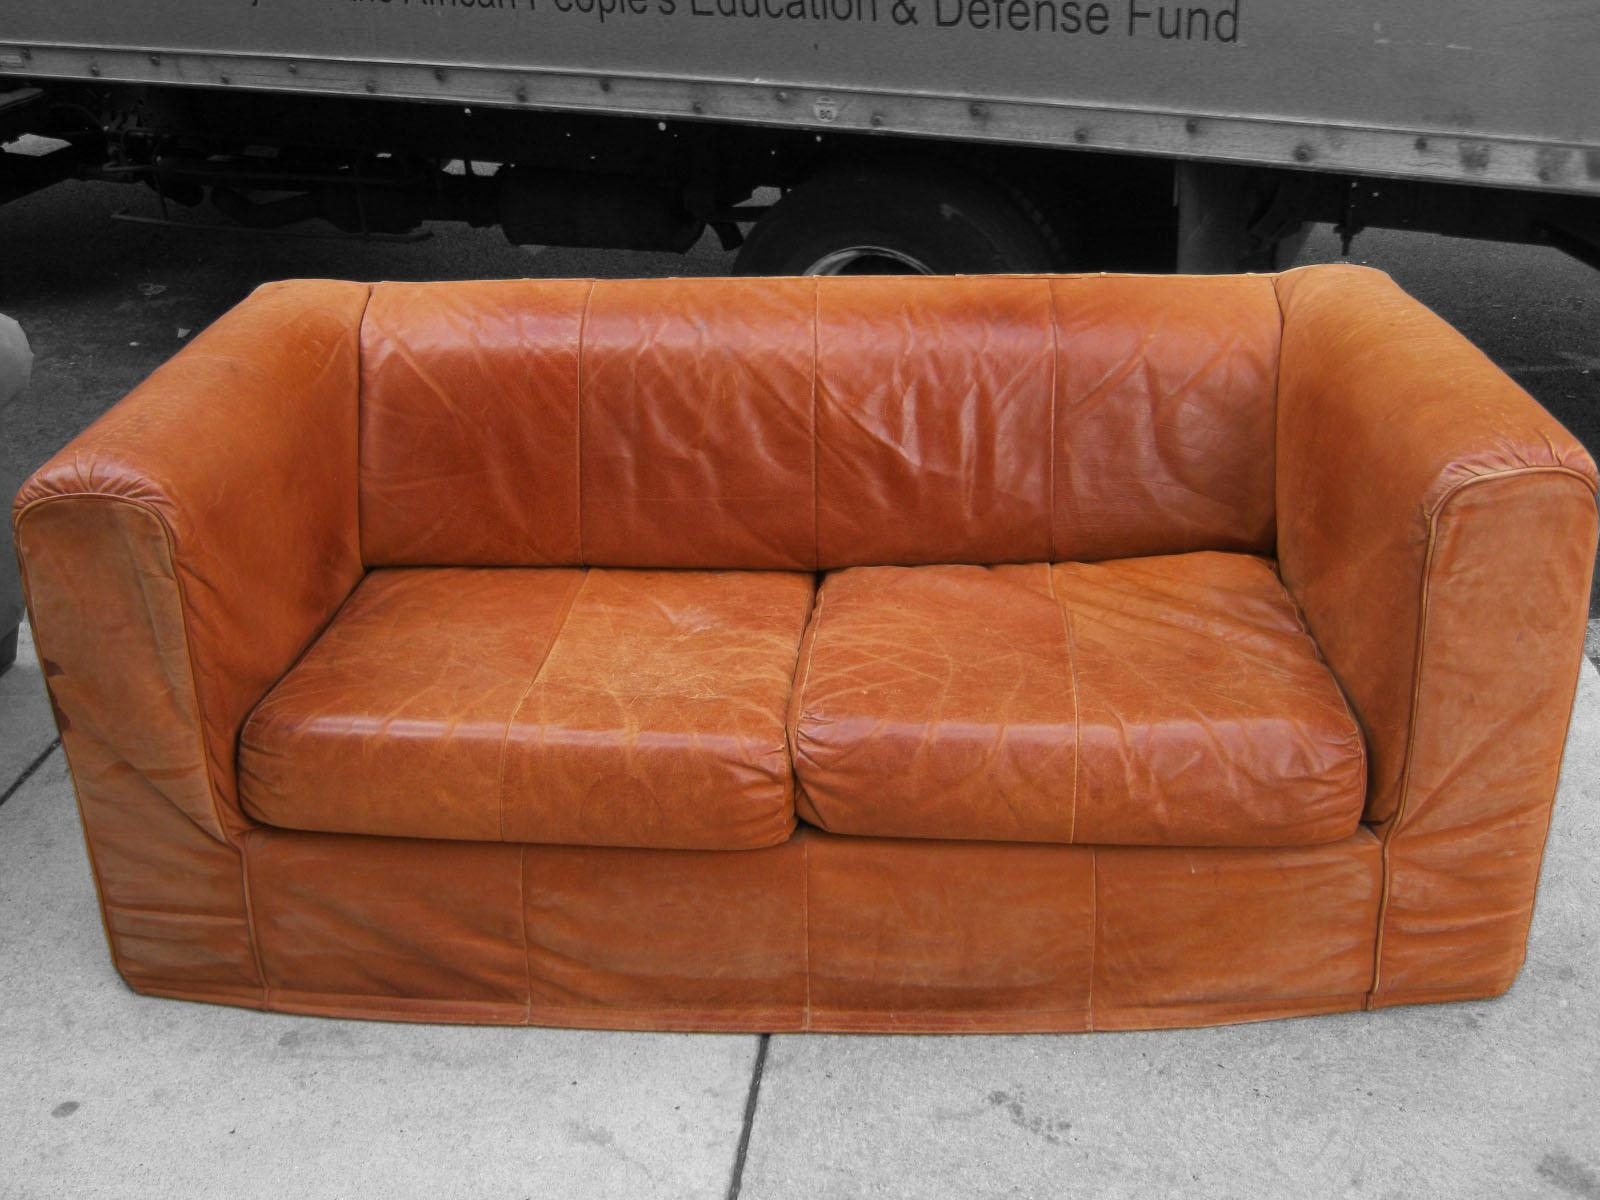 Camel Leather Sofa | Tehranmix Decoration With Camel Colored Leather Sofas (View 2 of 20)